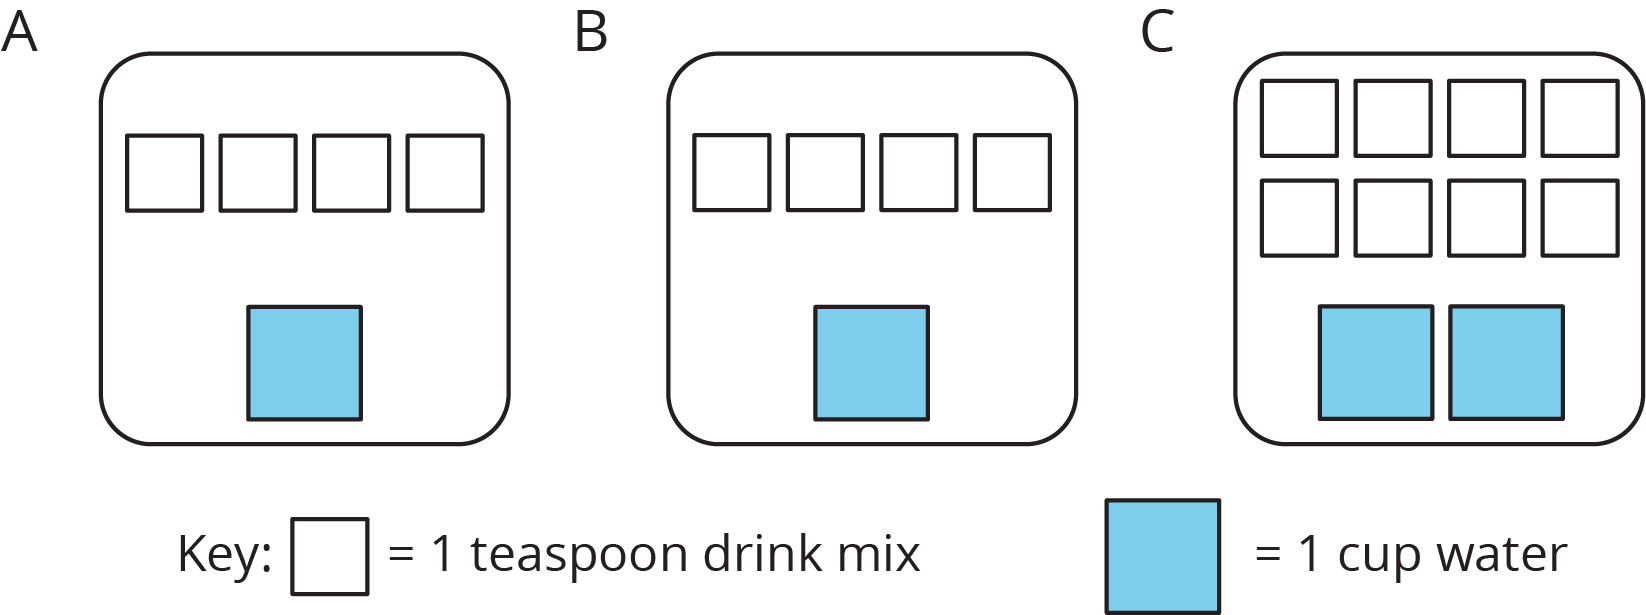 """A figure of three diagrams, labeled ""A"", ""B"", and ""C"", each contain white and blue squares. Diagram A has 4 white squares and 1 blue square. Diagram B has 4 white squares and 1 blue square. Diagram C has 8 white squares and 2 blue squares. There is a legend labeled ""key"" where 1 white square represents 1 teaspoon salt and 1 blue square represents 1 cup water."""